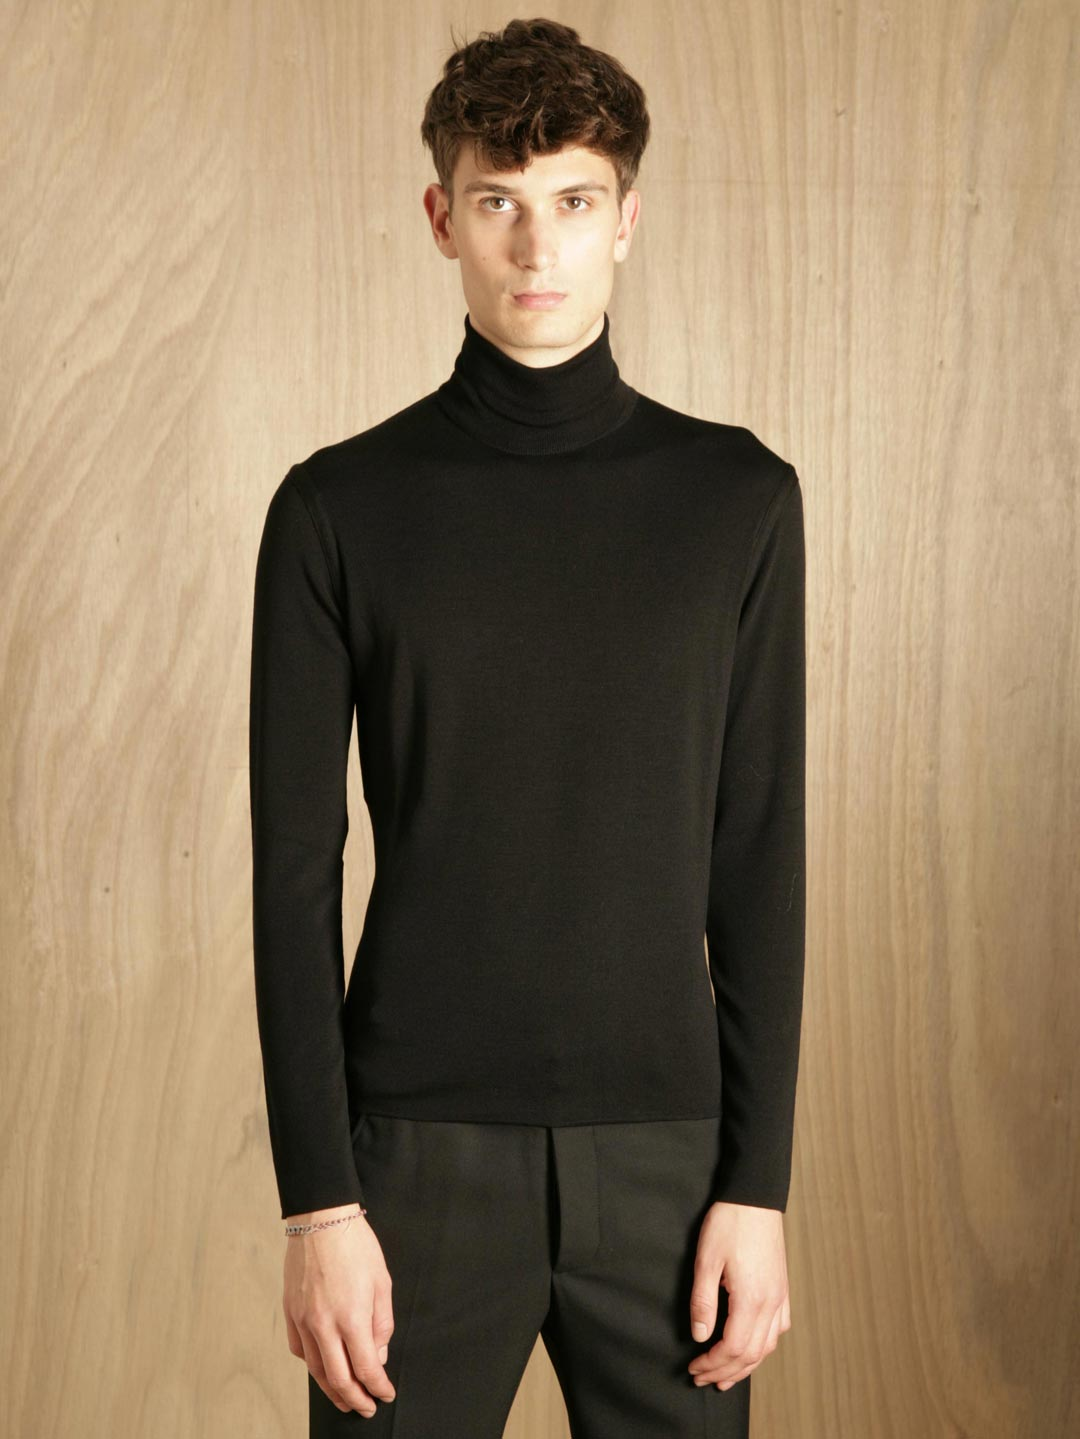 jil sander jil sander mens sweater turtle neck in black. Black Bedroom Furniture Sets. Home Design Ideas